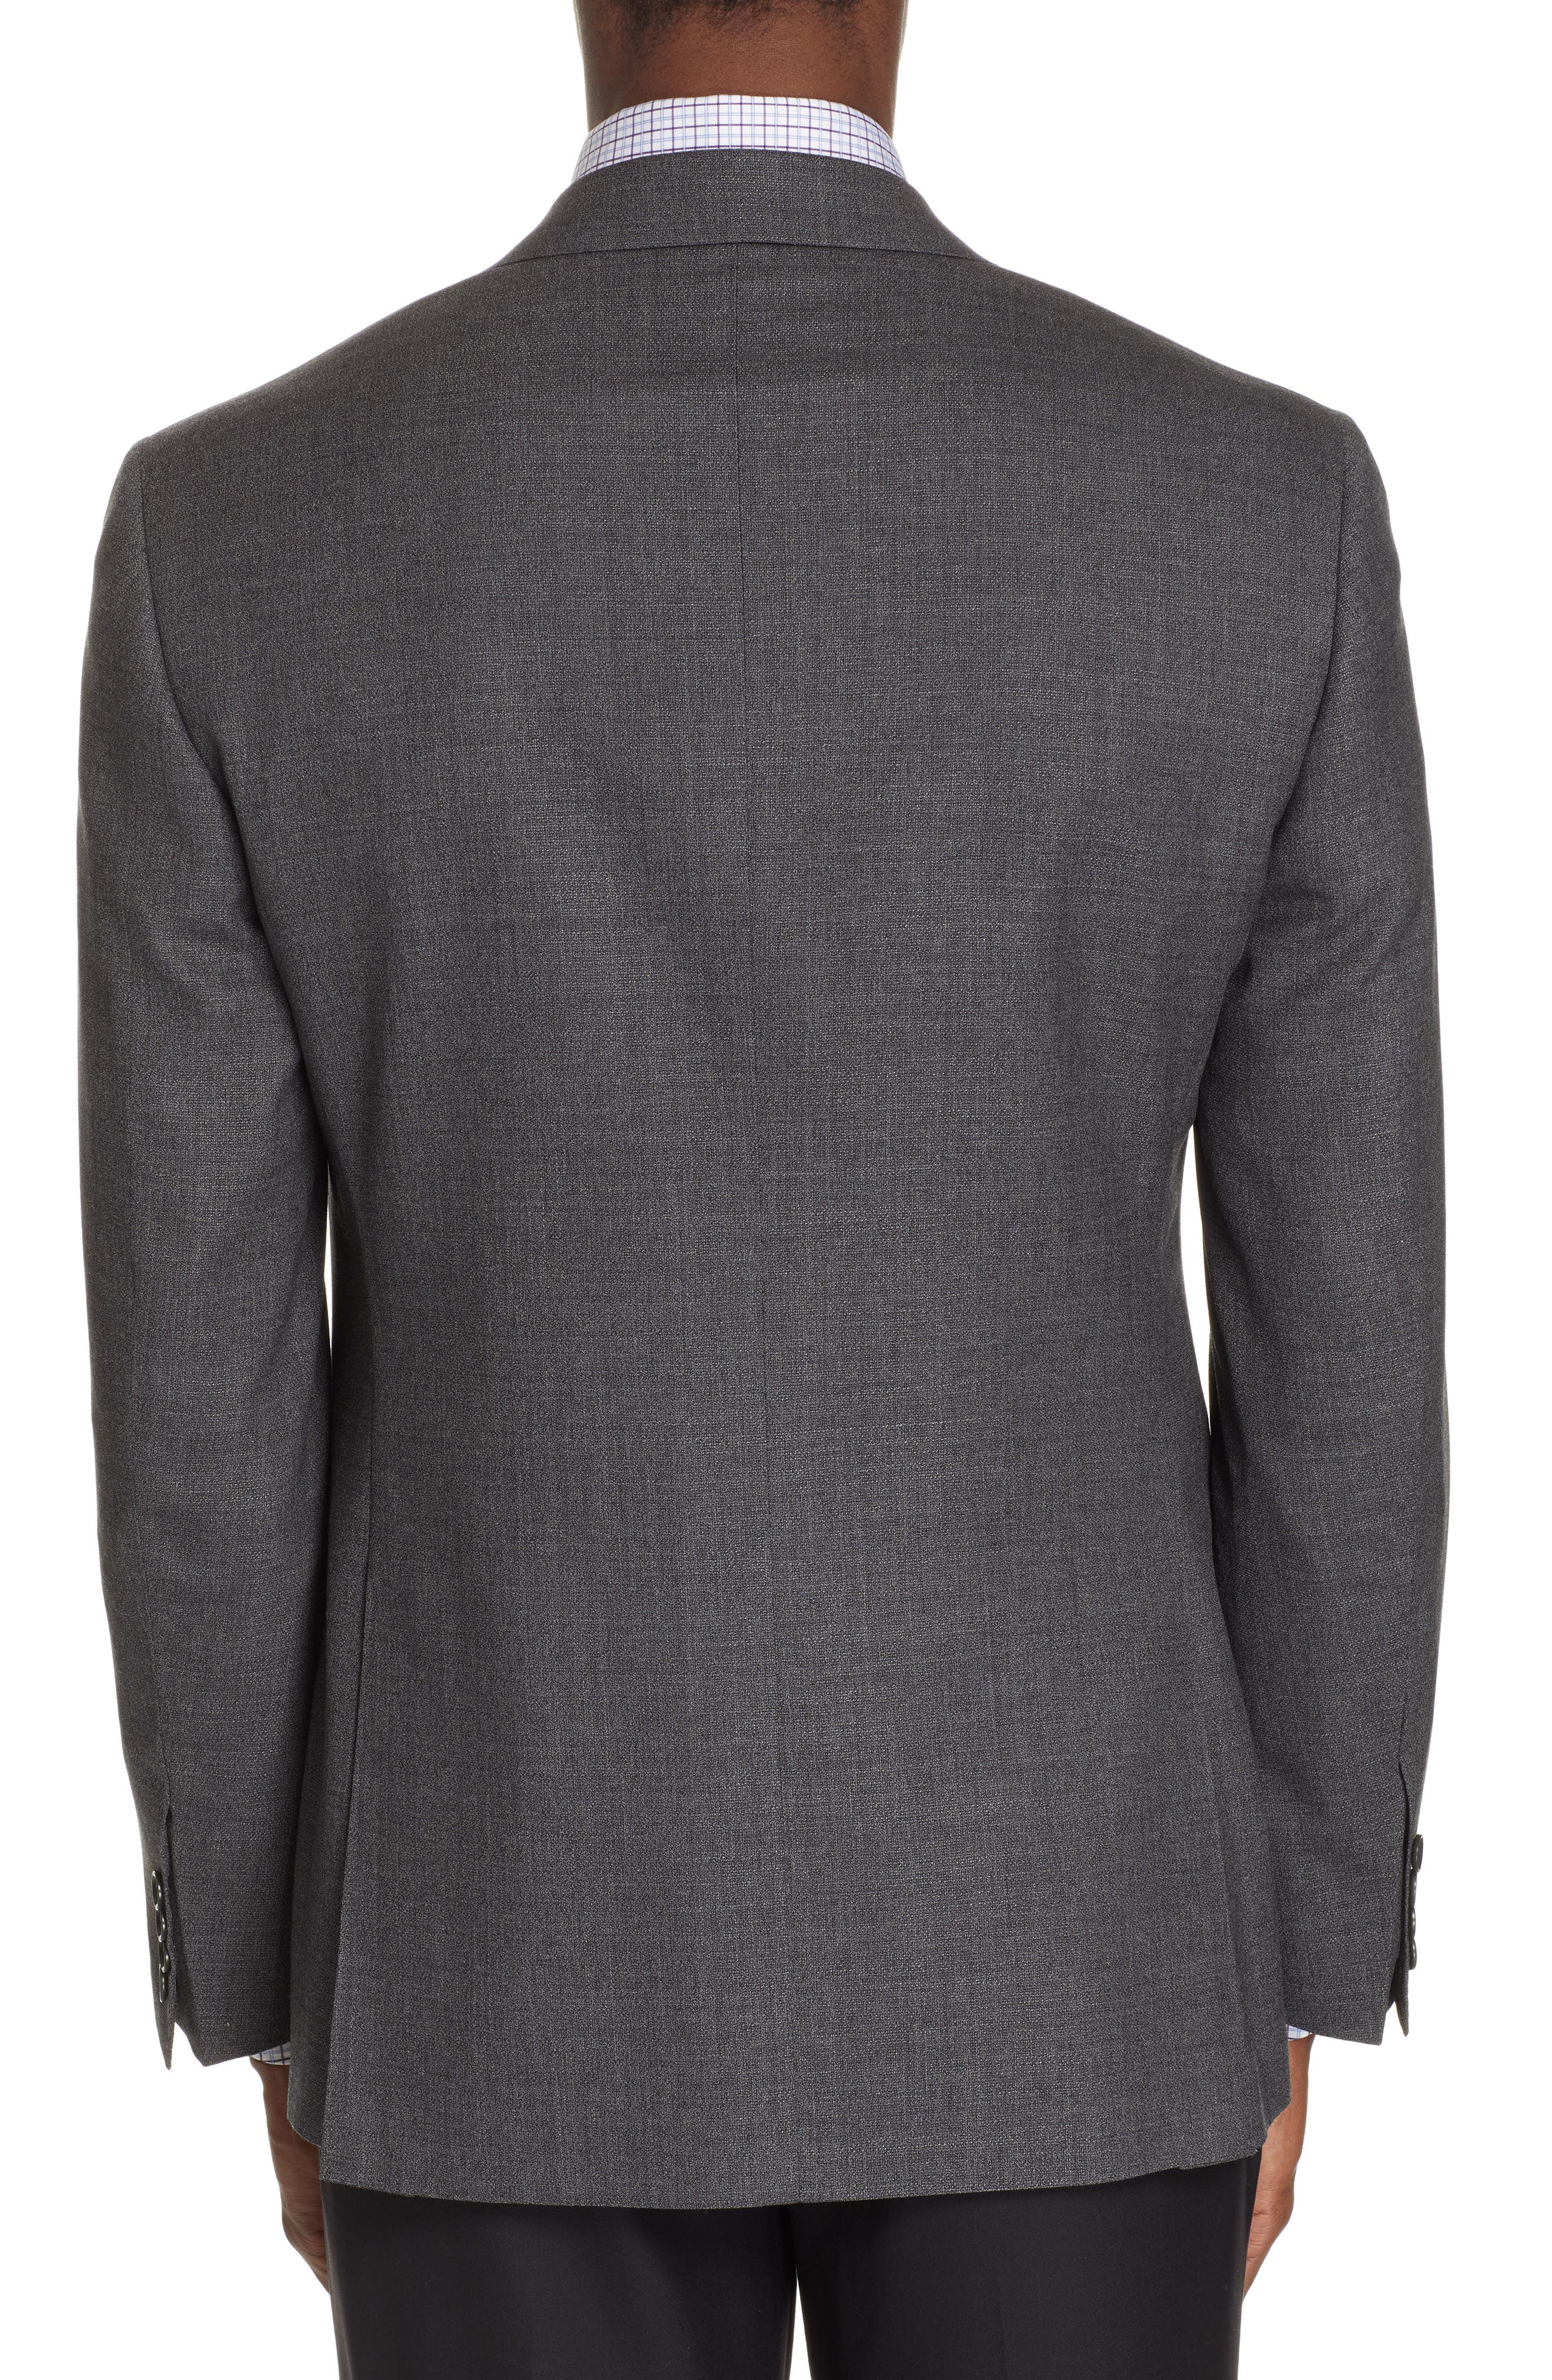 CANALI, Sienna Classic Fit Solid Wool Sport Coat, Alternate thumbnail 2, color, CHARCOAL